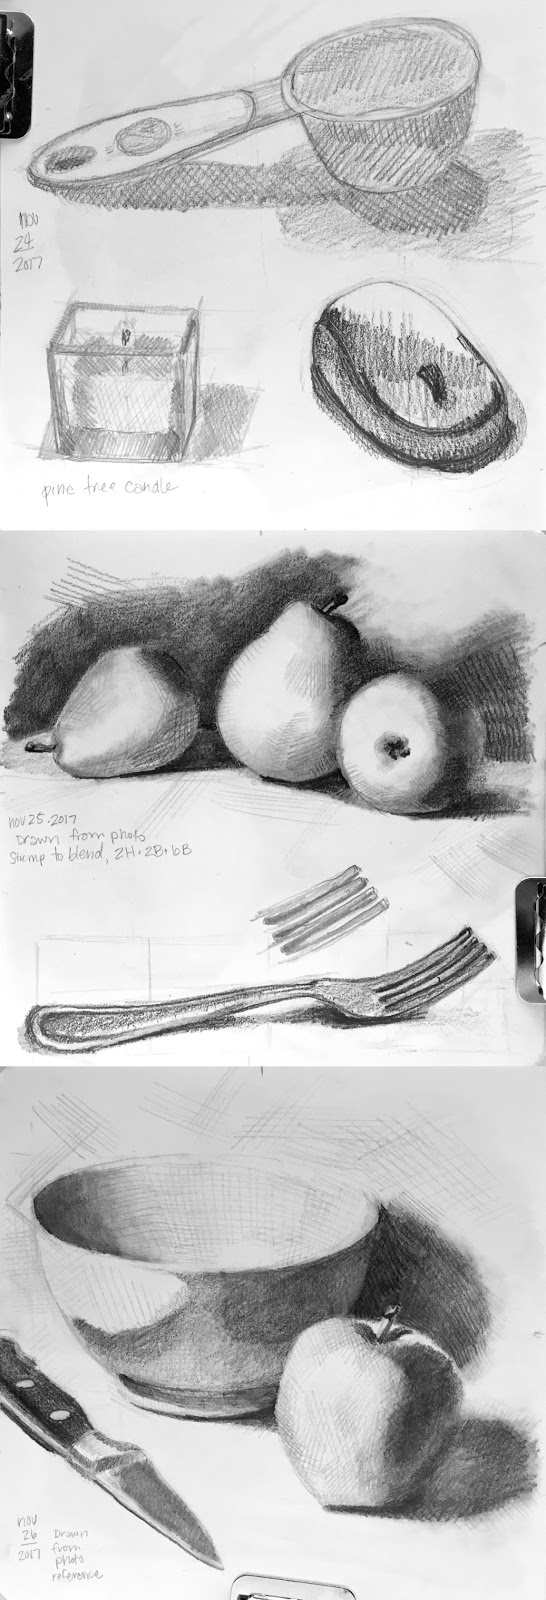 Daily Art 11-24-17-11-26-17 still life sketch in graphite number 30-35 - weekend roundup